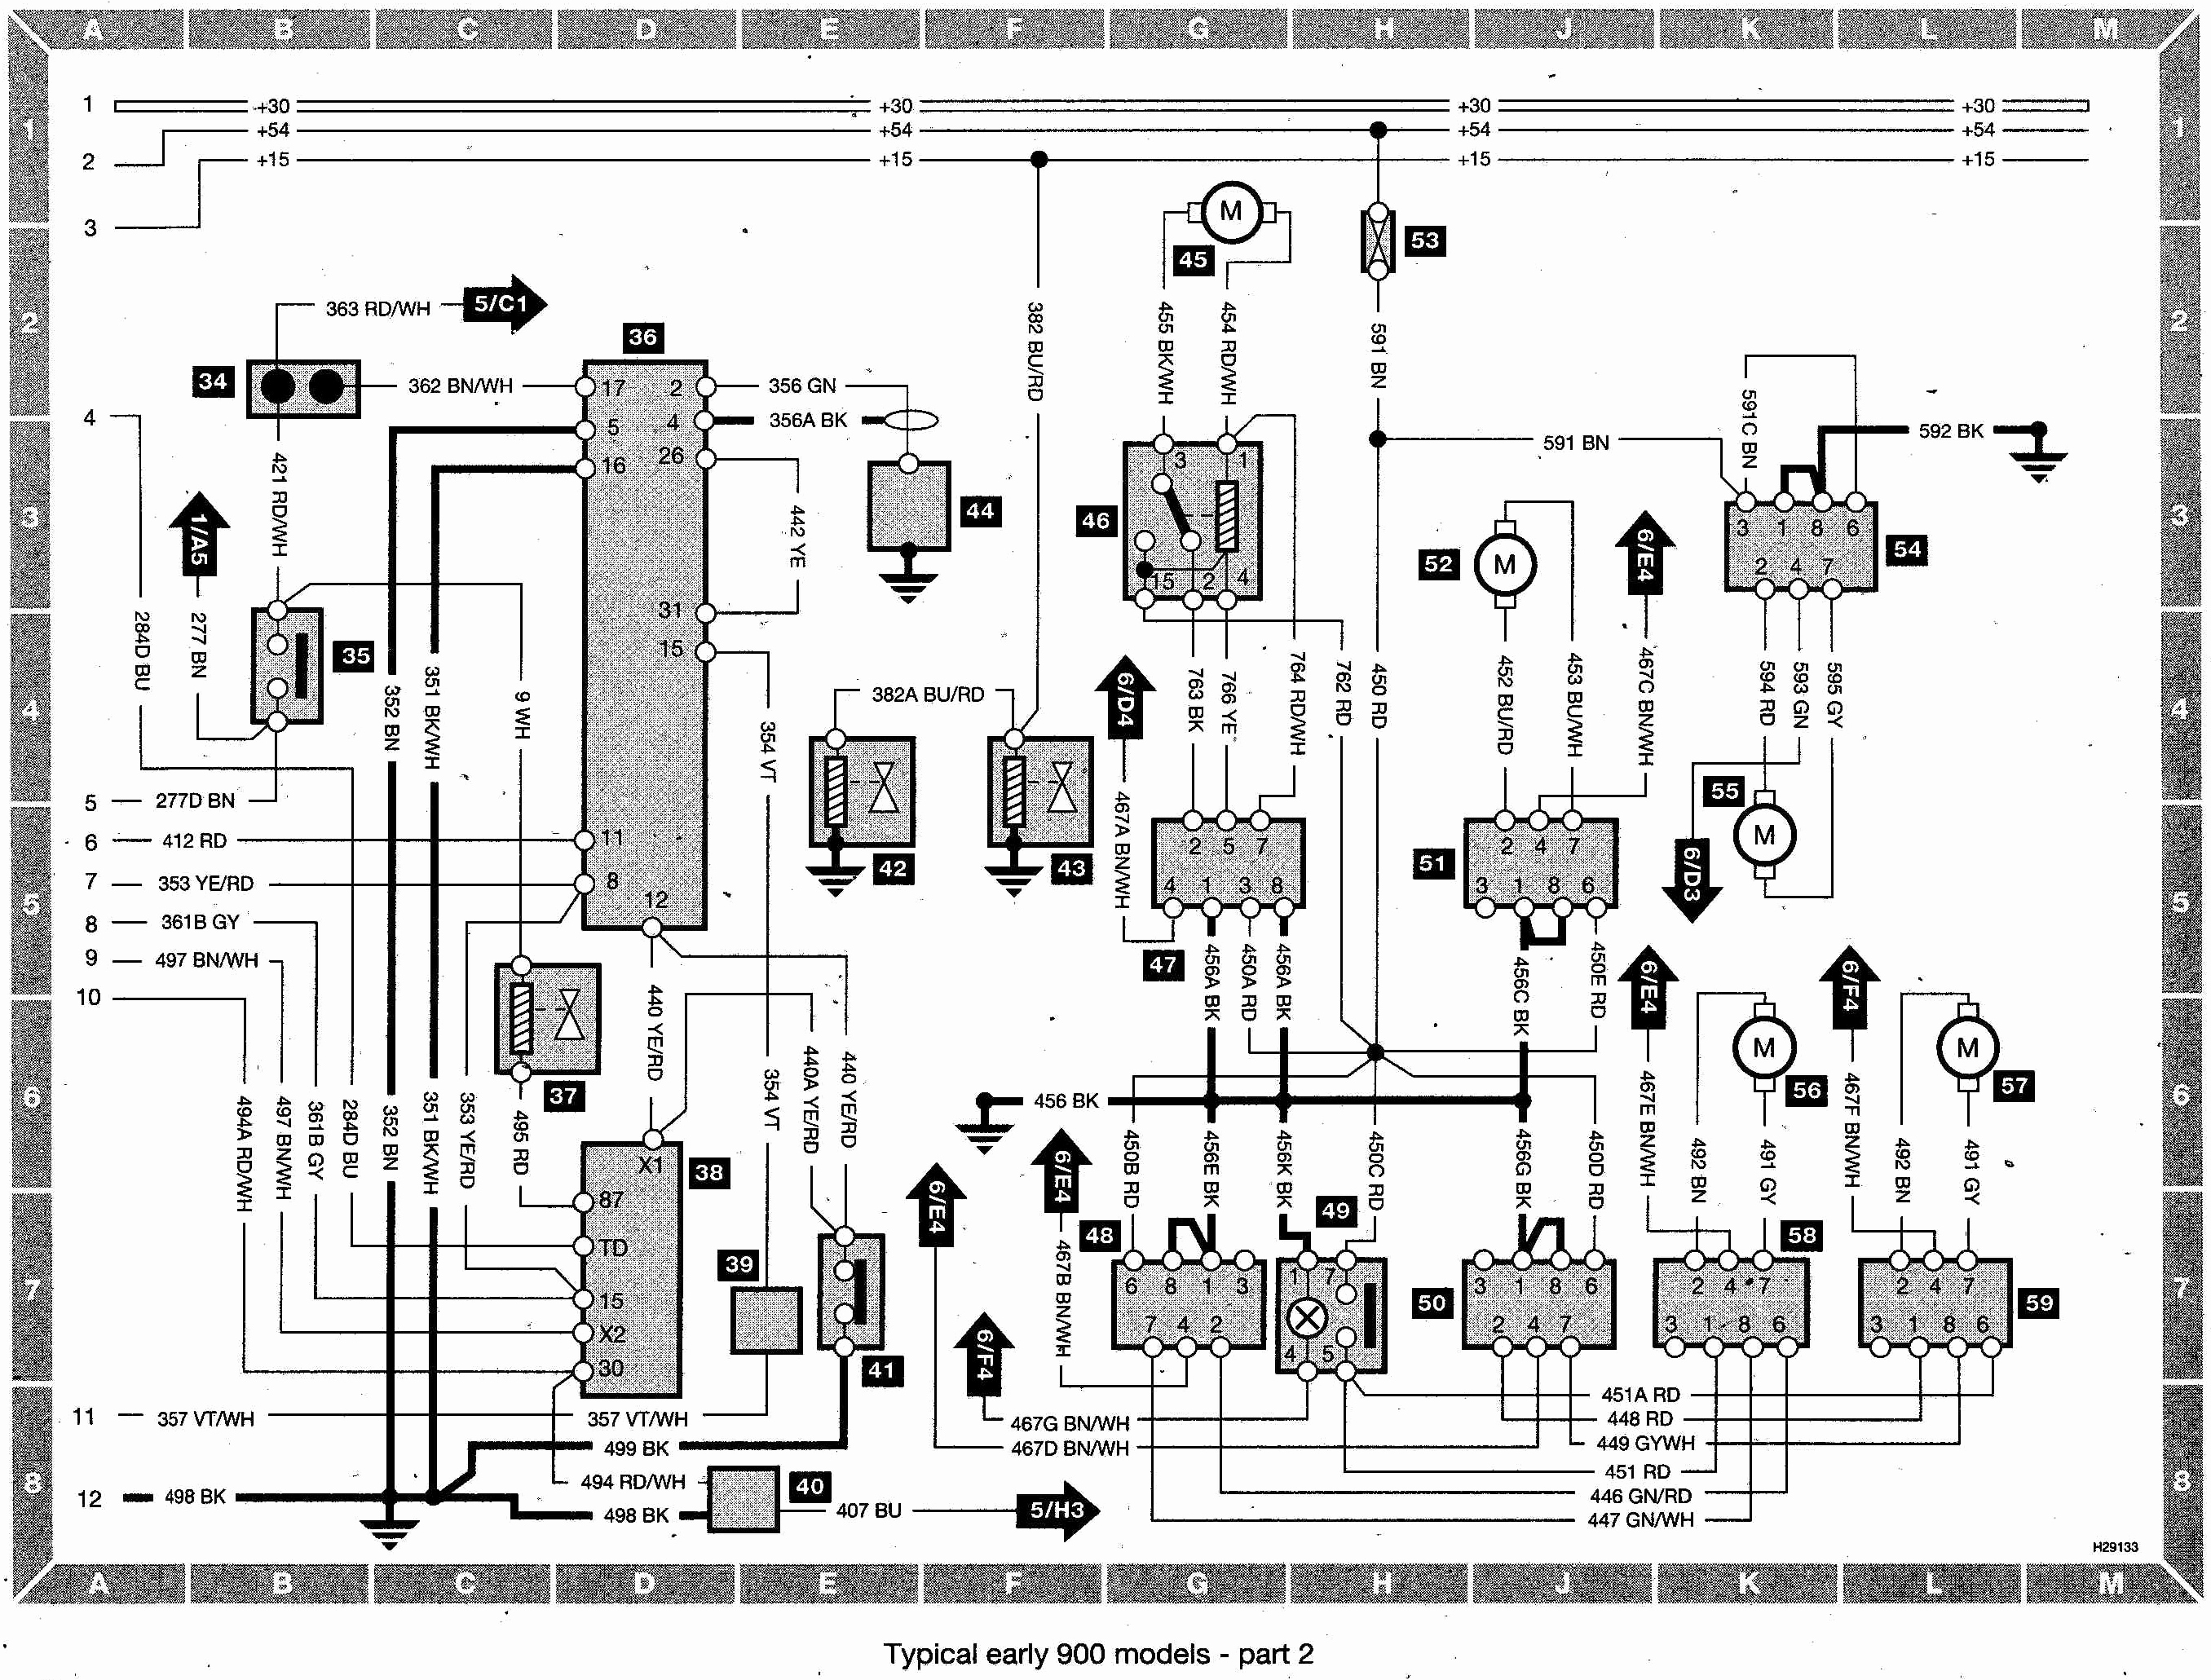 saab 900 wiring diagram pdf collection saab 93 wiring diagrams saab 93 wiring diagram download #5